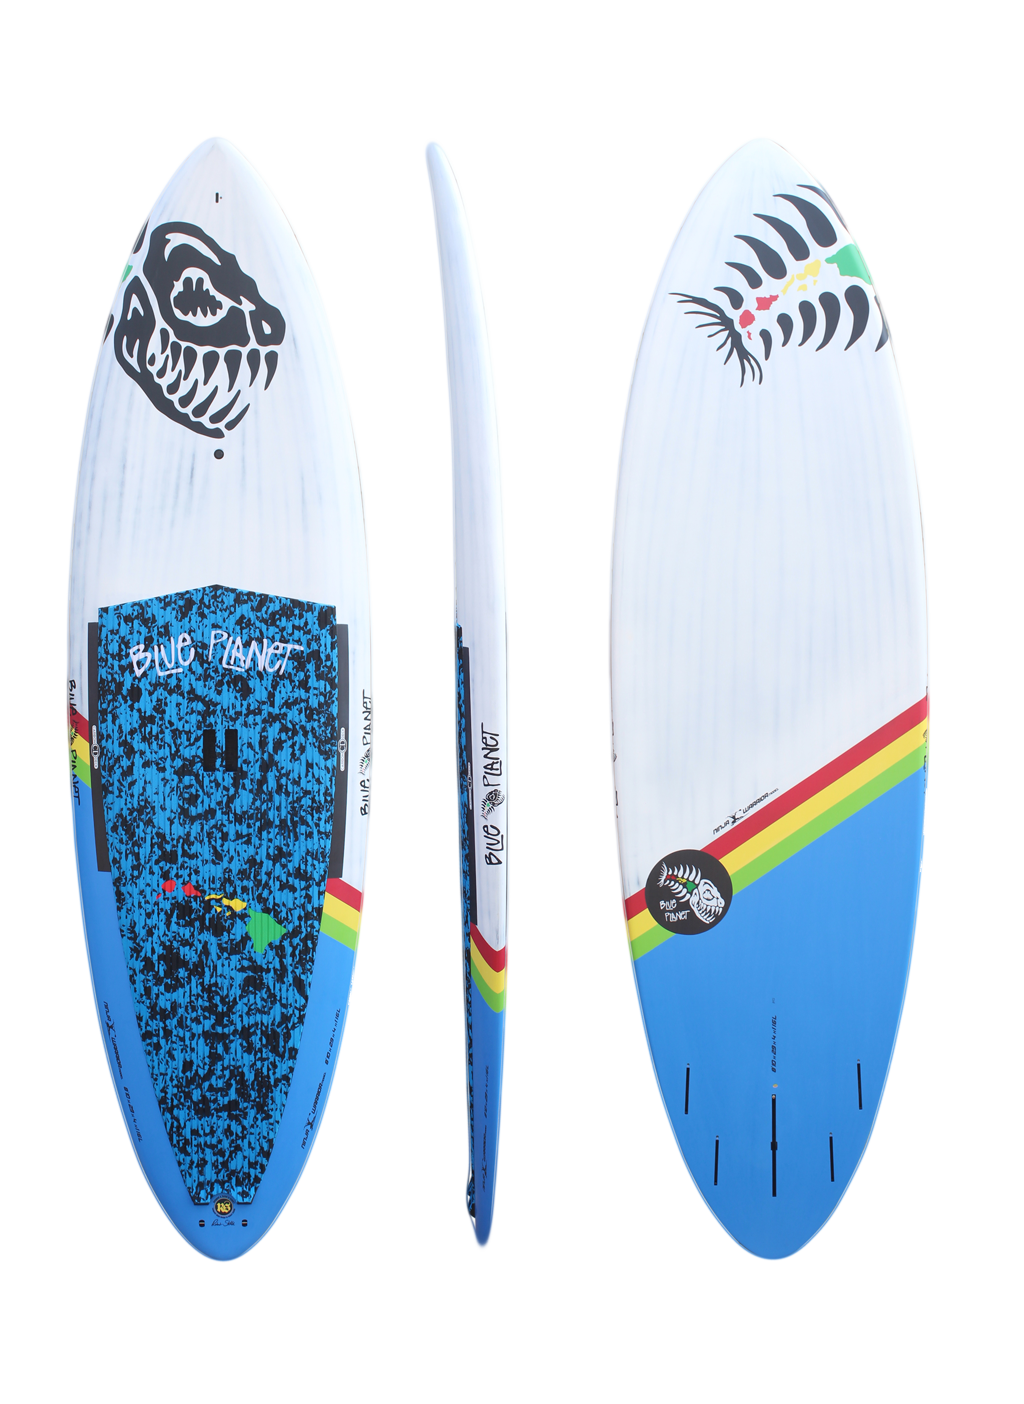 8'10x29 Ninja Warrior wht-blue carbon